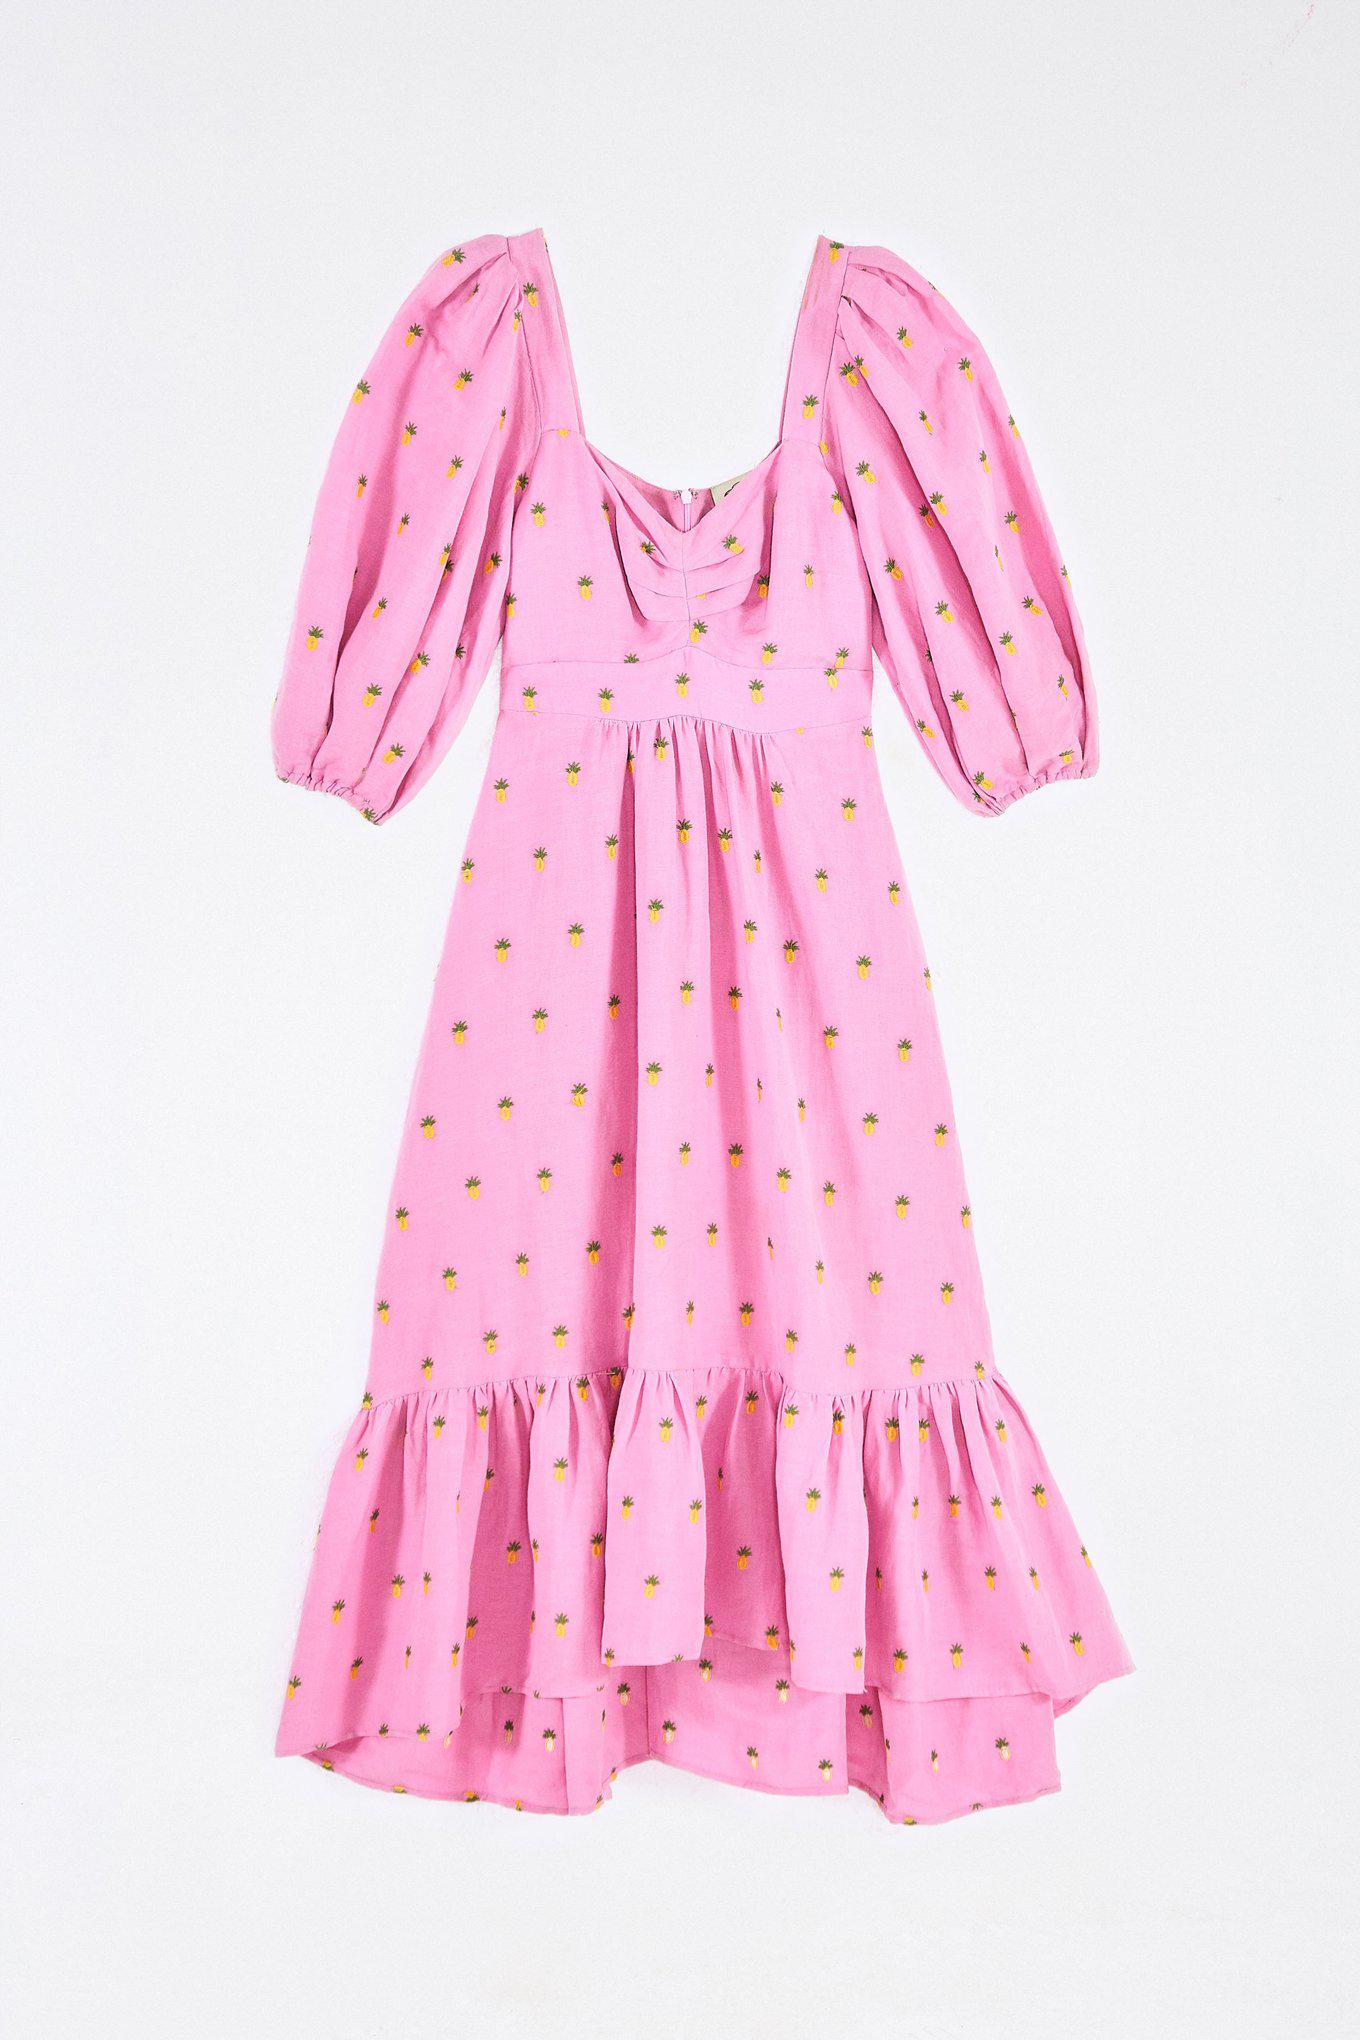 EMBROIDERED PINEAPPLES PINK MIDI DRESS 5